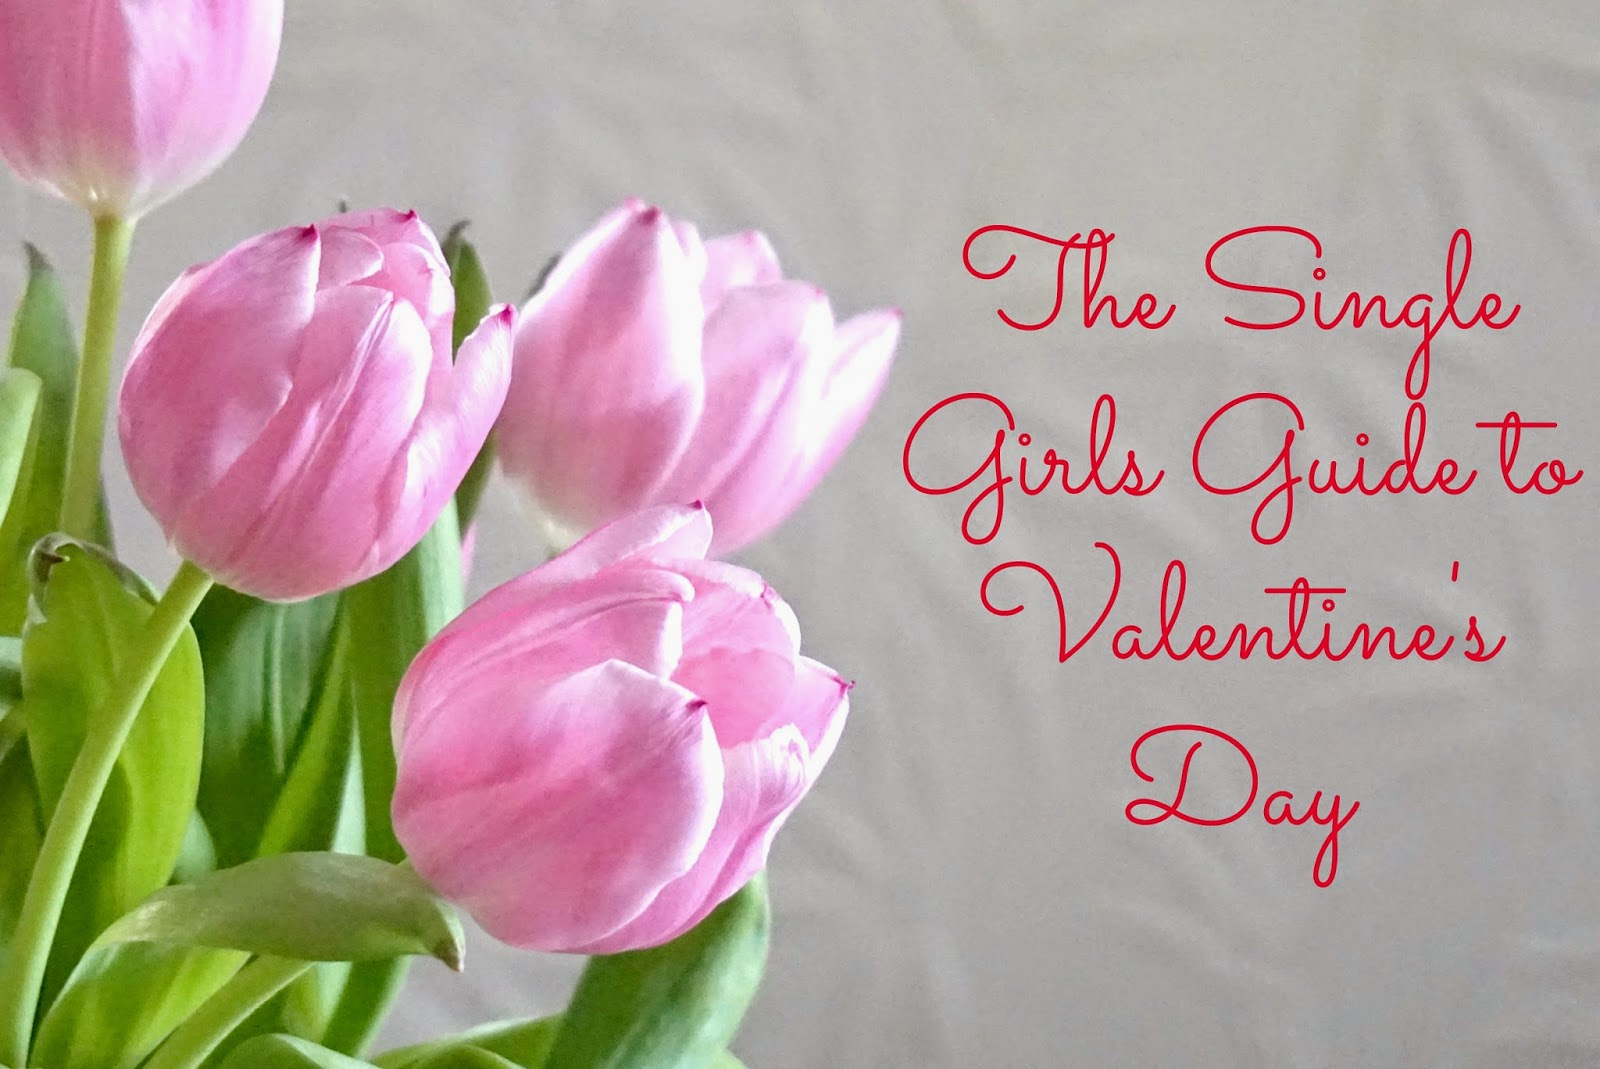 The Single Girls Guide to Valentine's Day